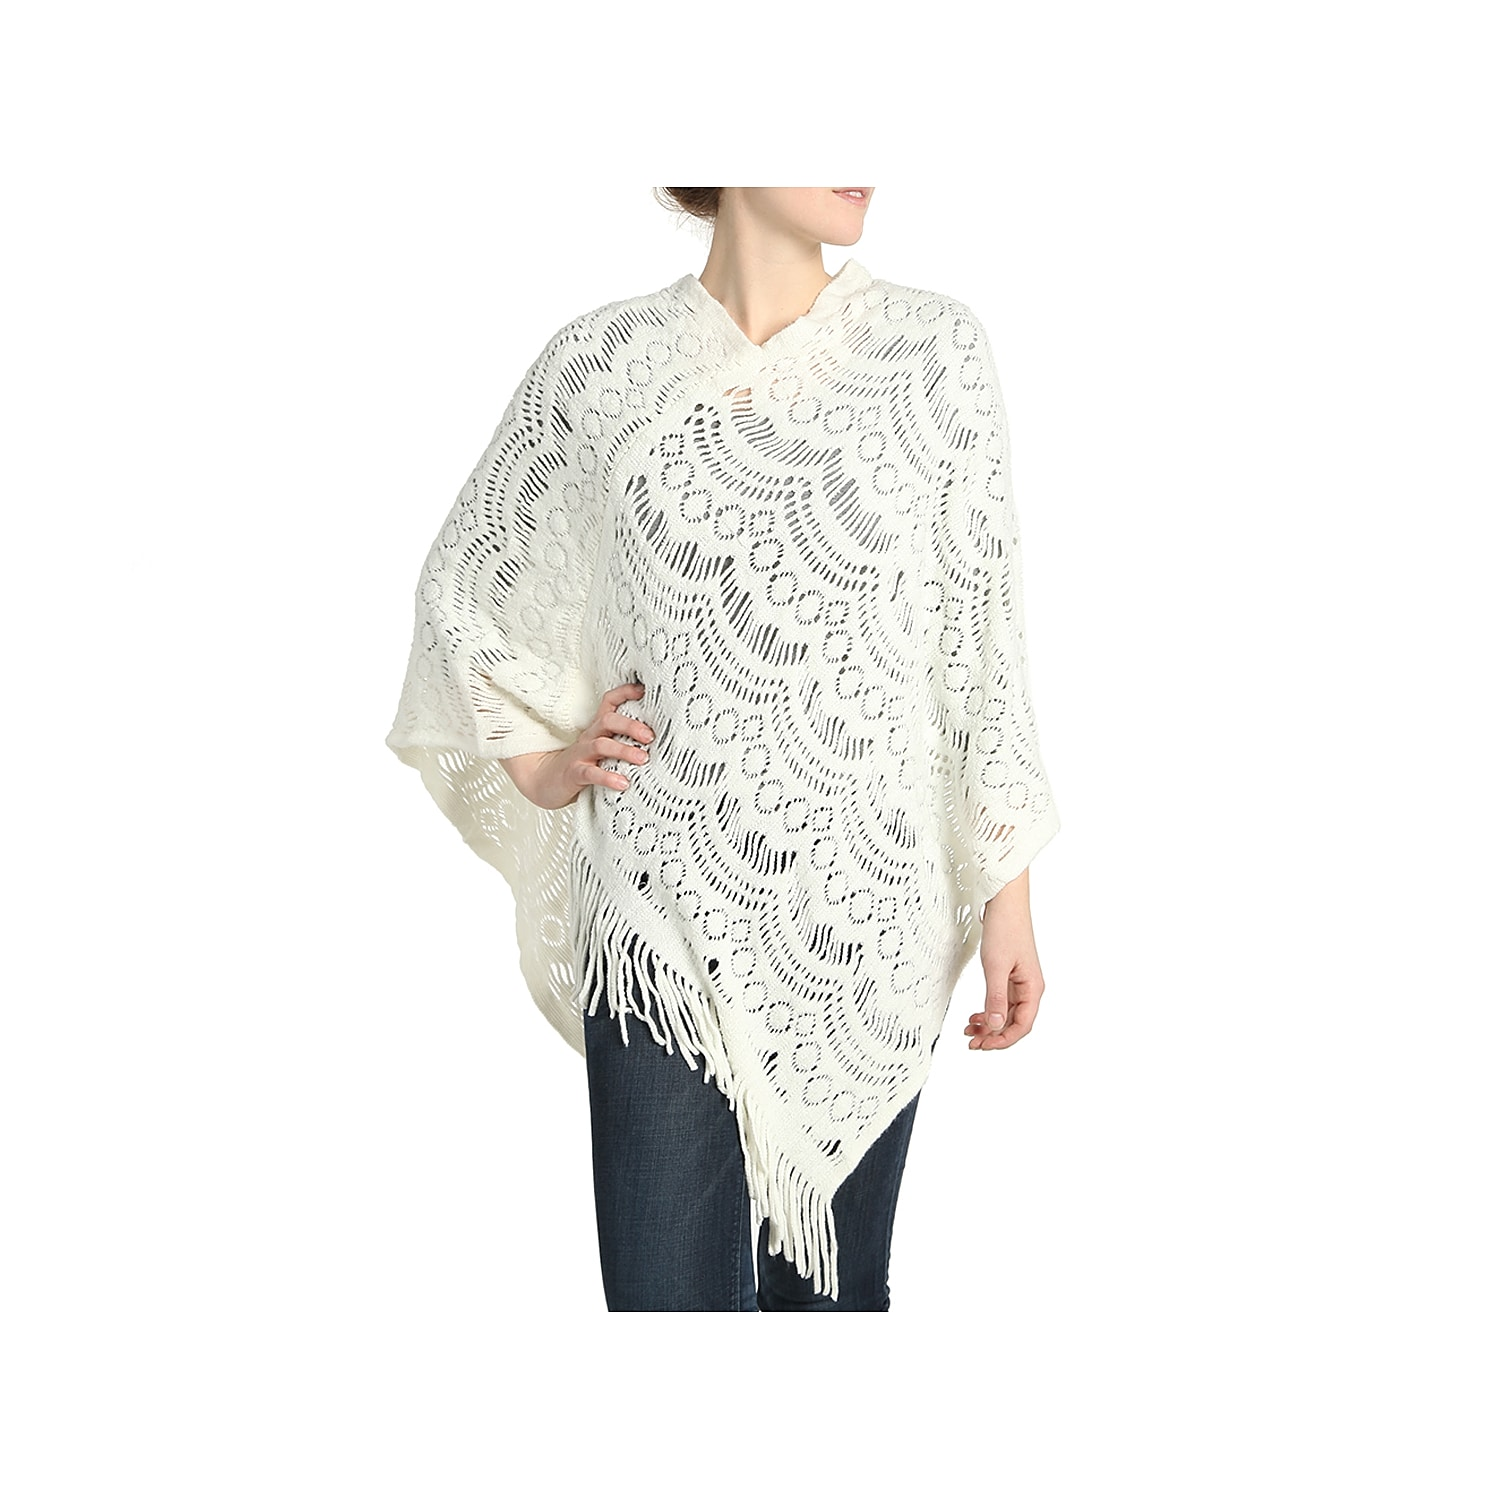 Throw on the Easy Breezy poncho from Kelly & Katie with your favorite pair of jeans to stay cozy all season long. A thick knit construction and fringe trim finishes this wrap for trendy style. Want more style inspiration? Click hereto shop accessories!